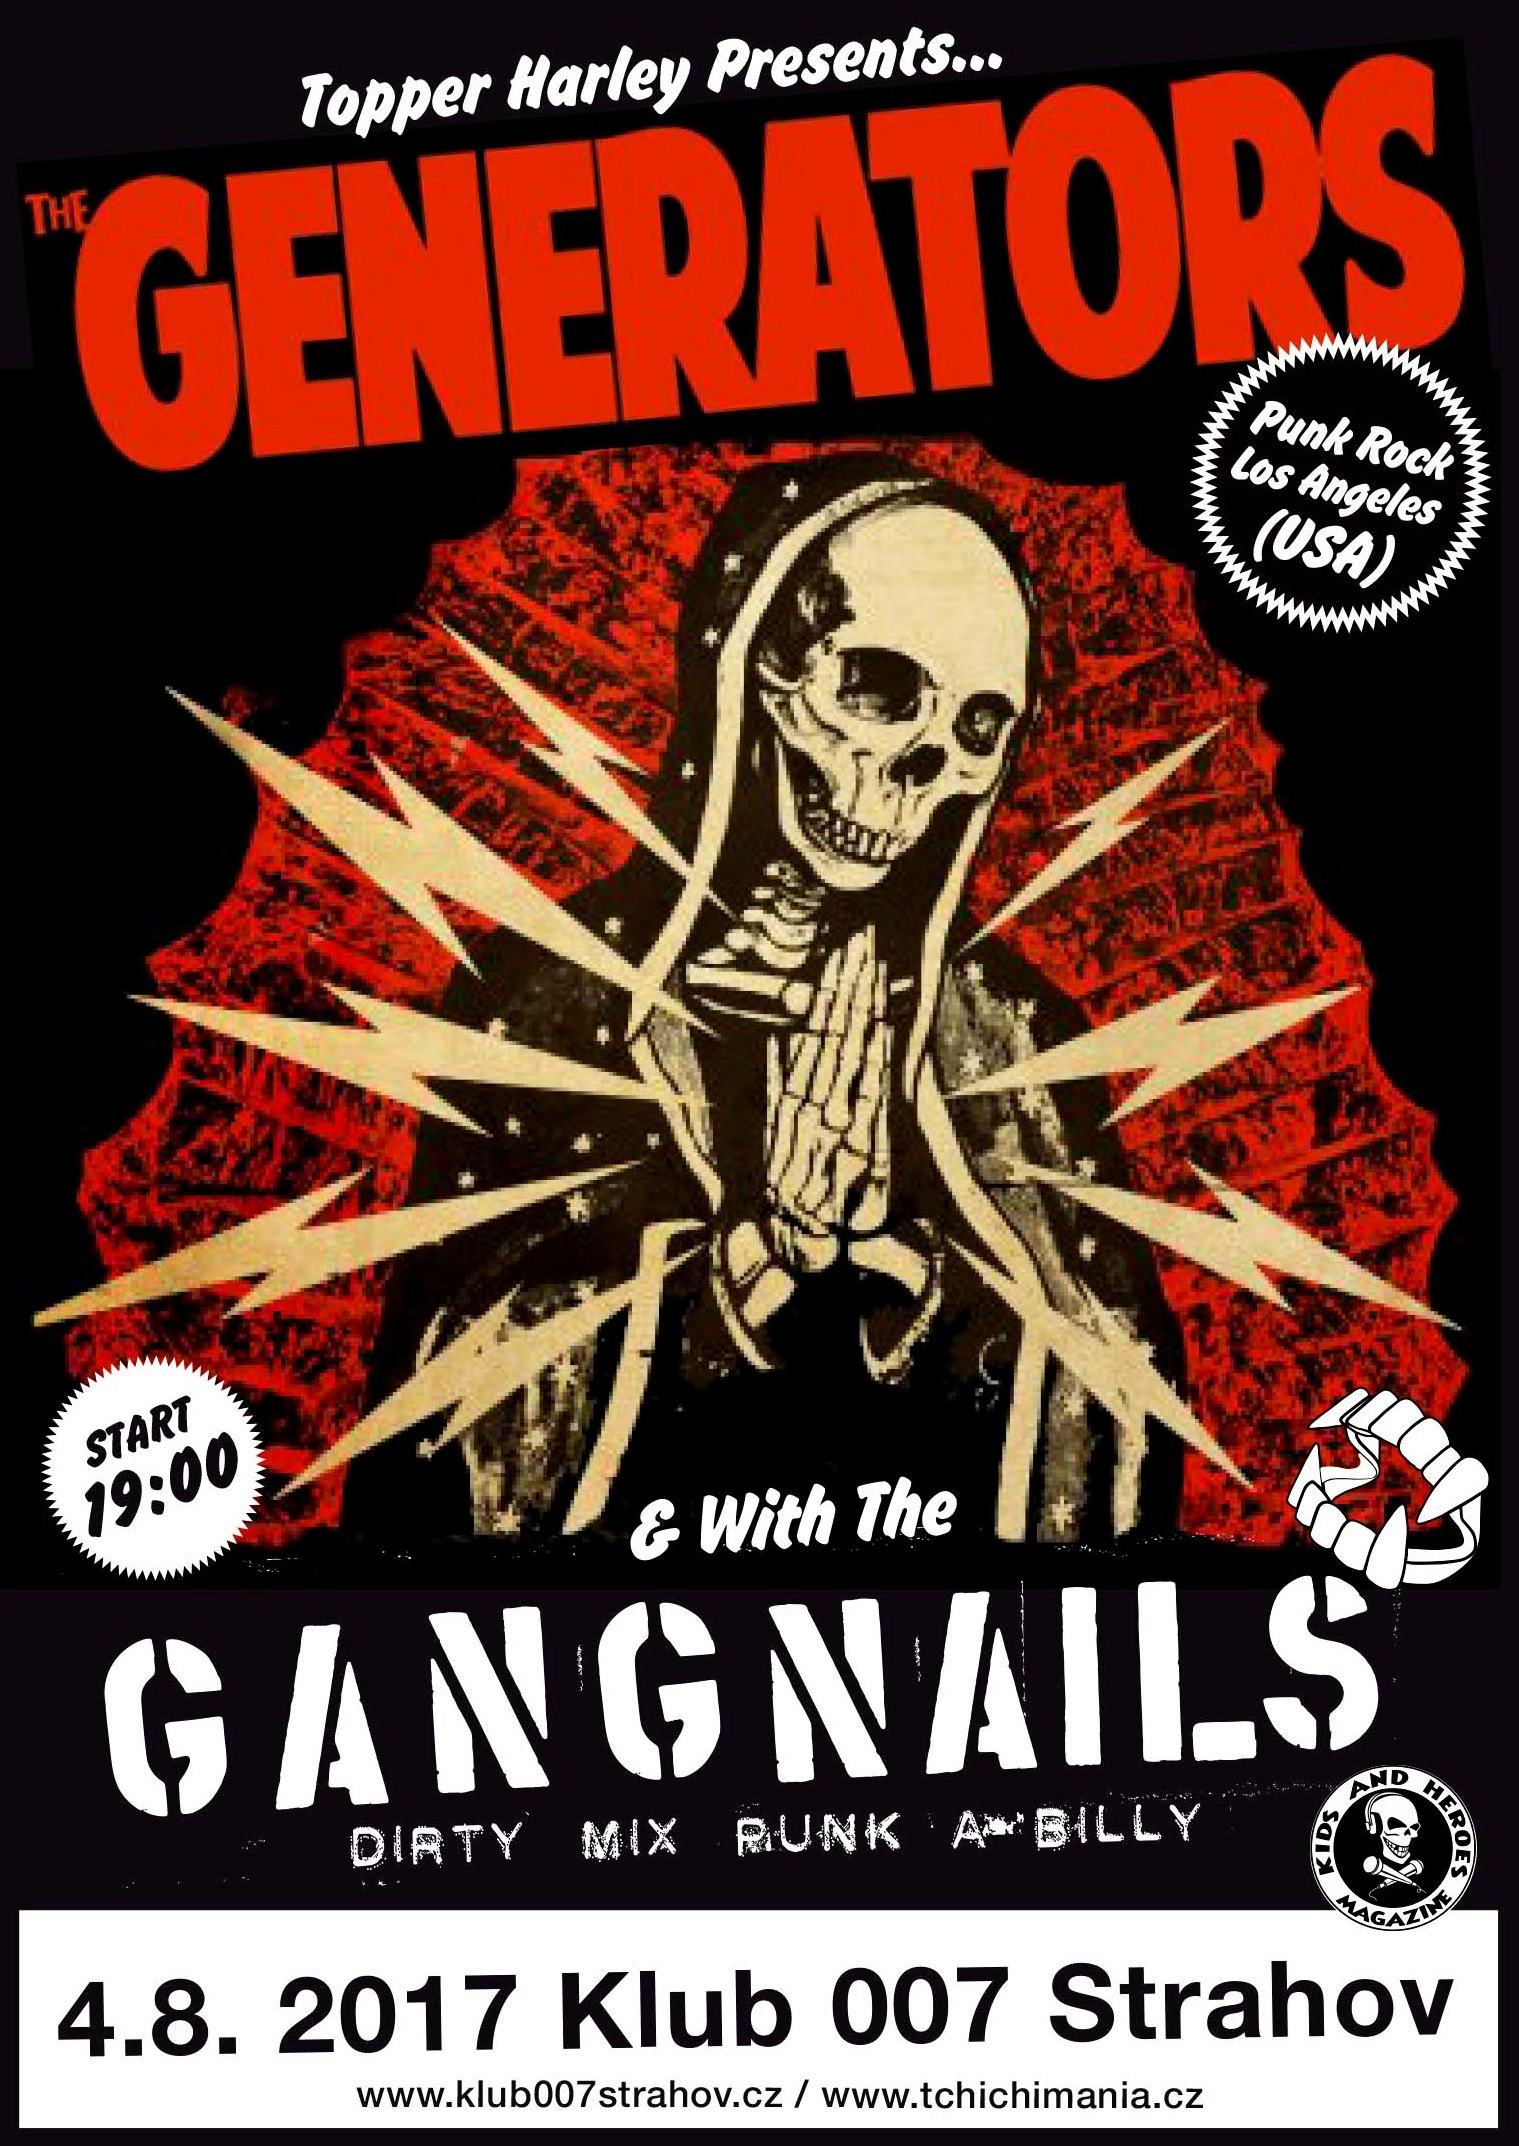 The Generators and the Gangnails